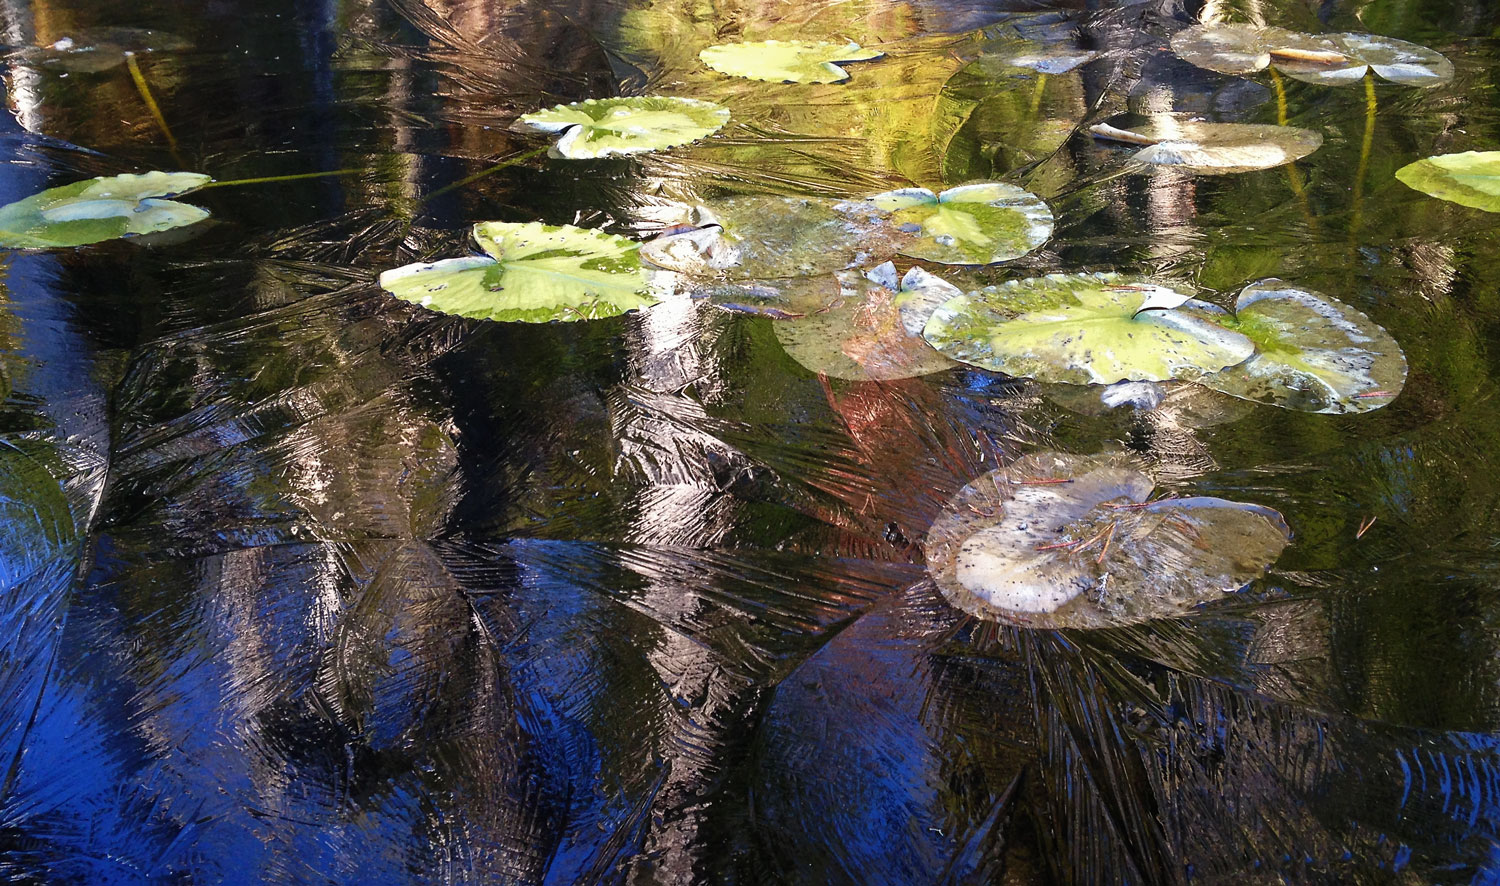 Lily pads in ice